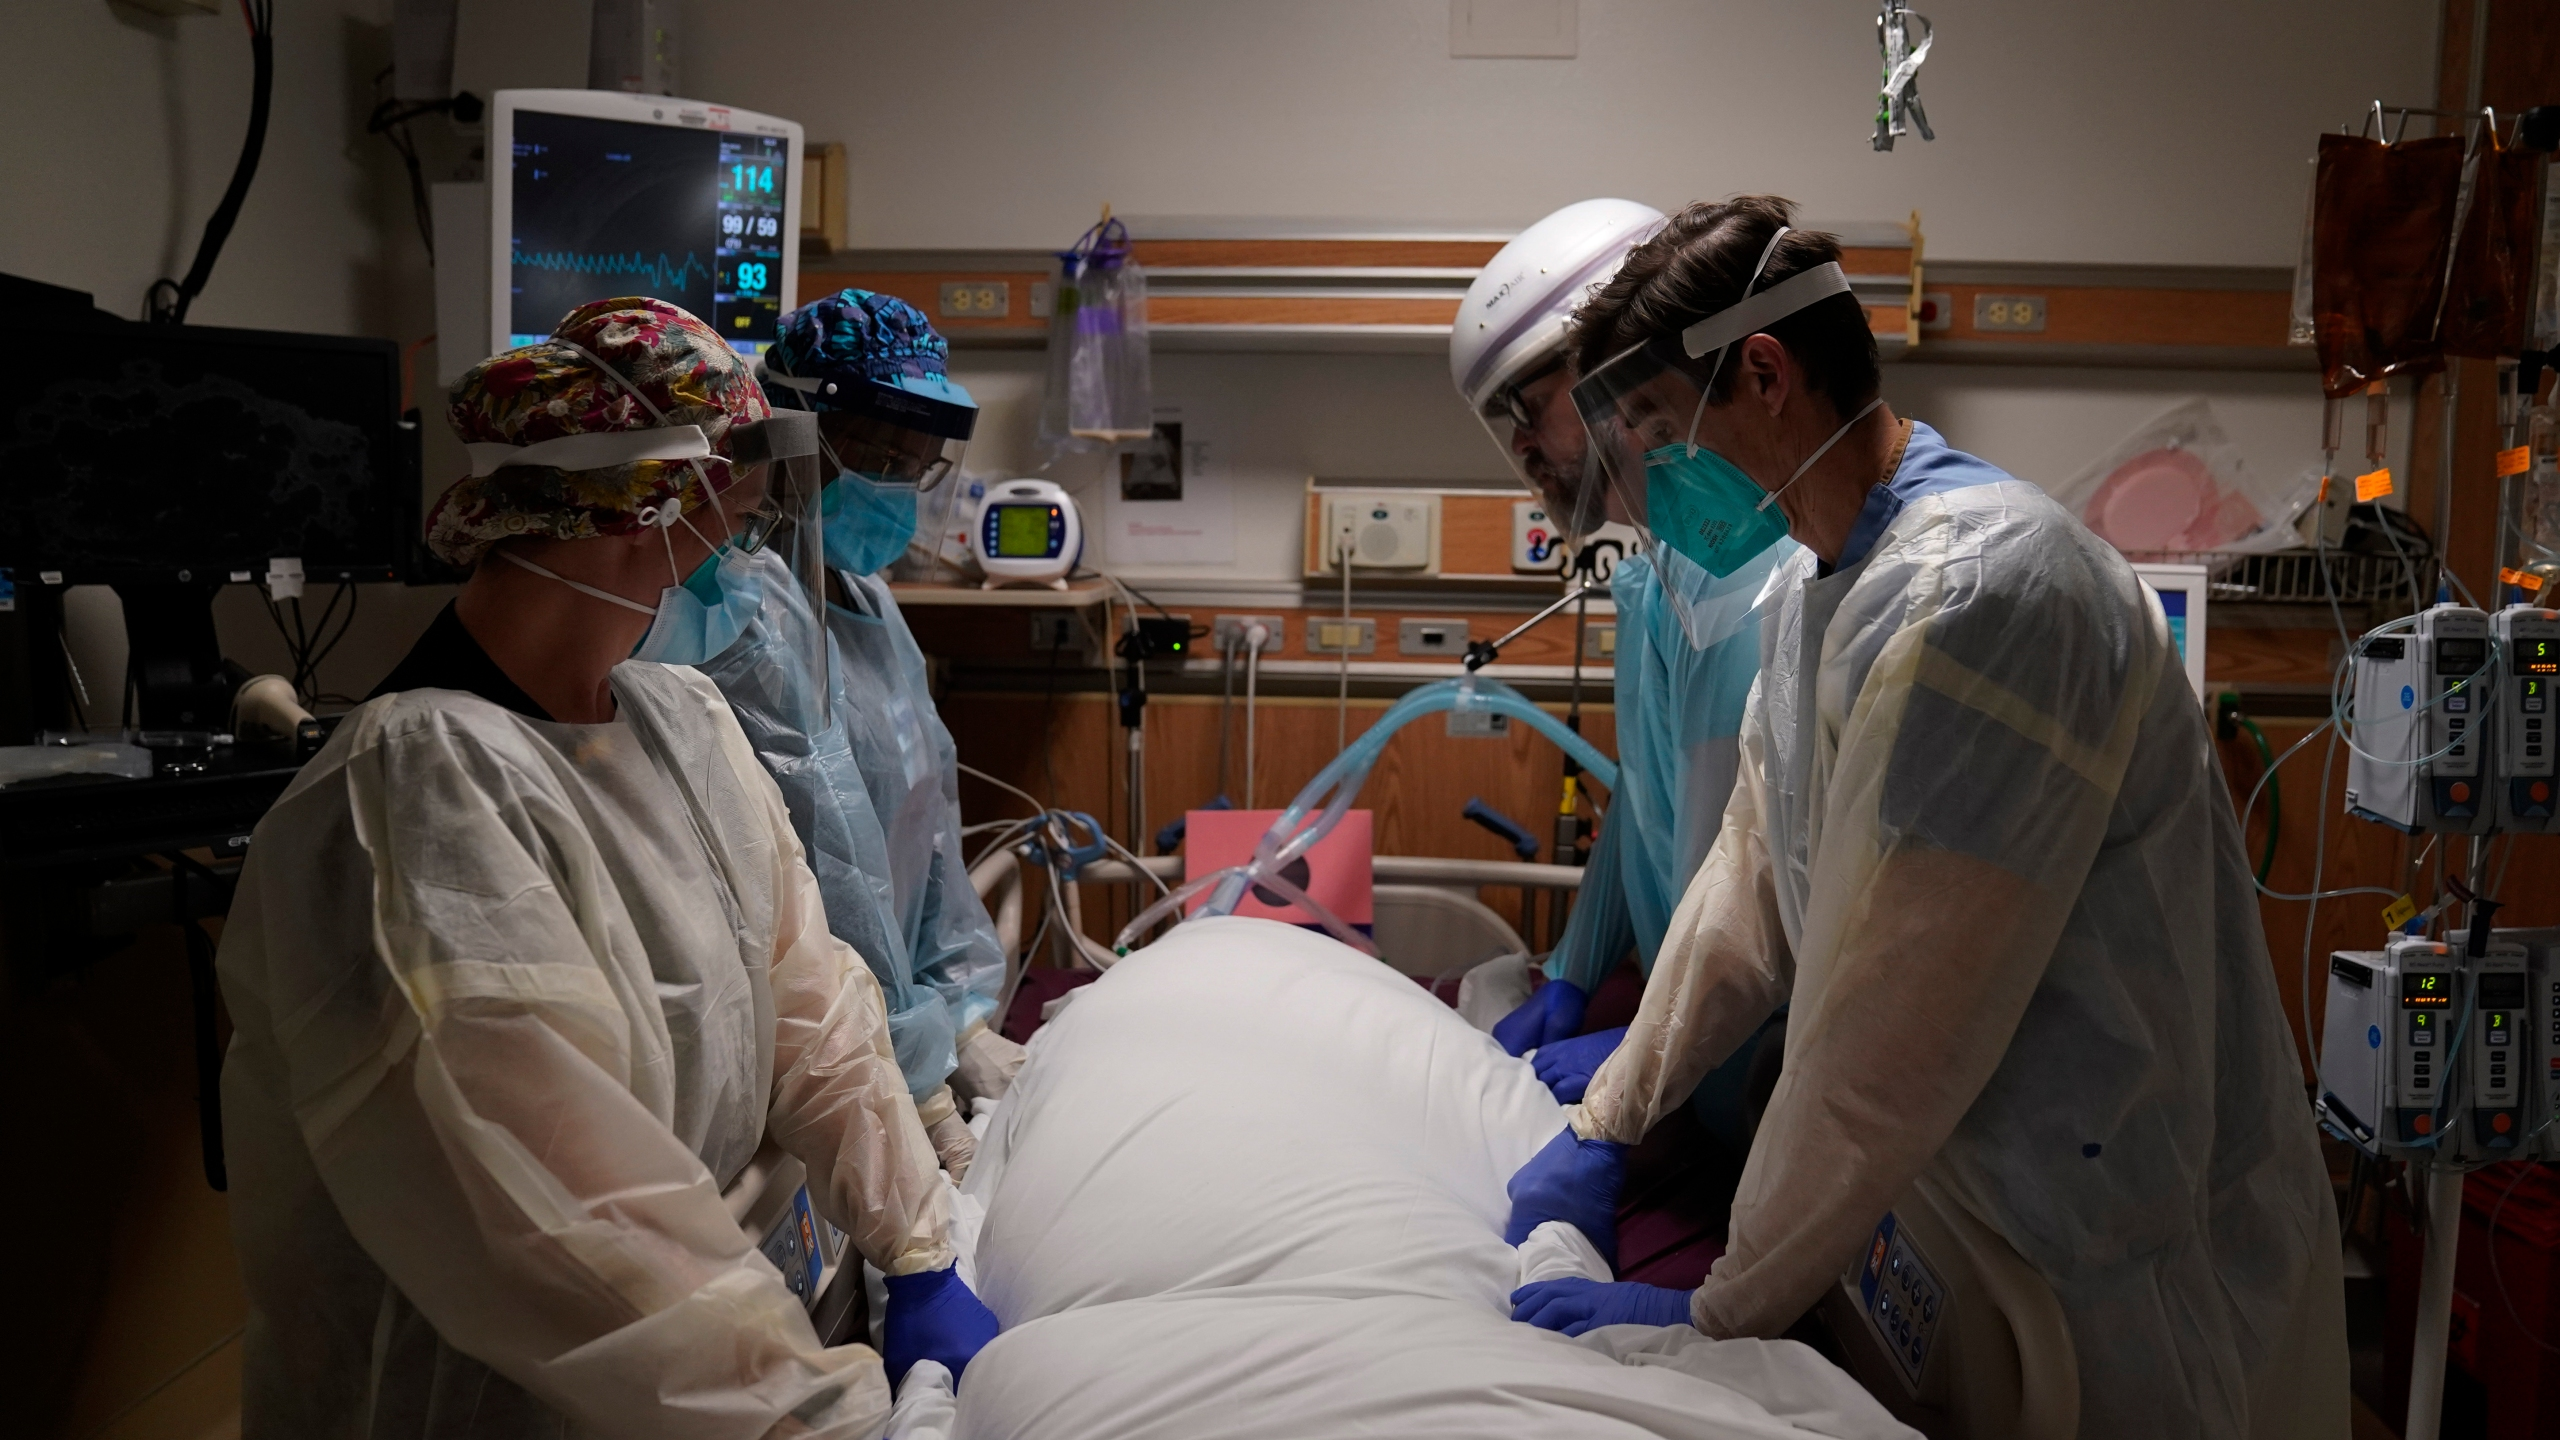 In this Dec. 22, 2020, file photo, medical workers prepare to manually prone a COVID-19 patient in an intensive care unit at Providence Holy Cross Medical Center in the Mission Hills section of Los Angeles. (AP Photo/Jae C. Hong)